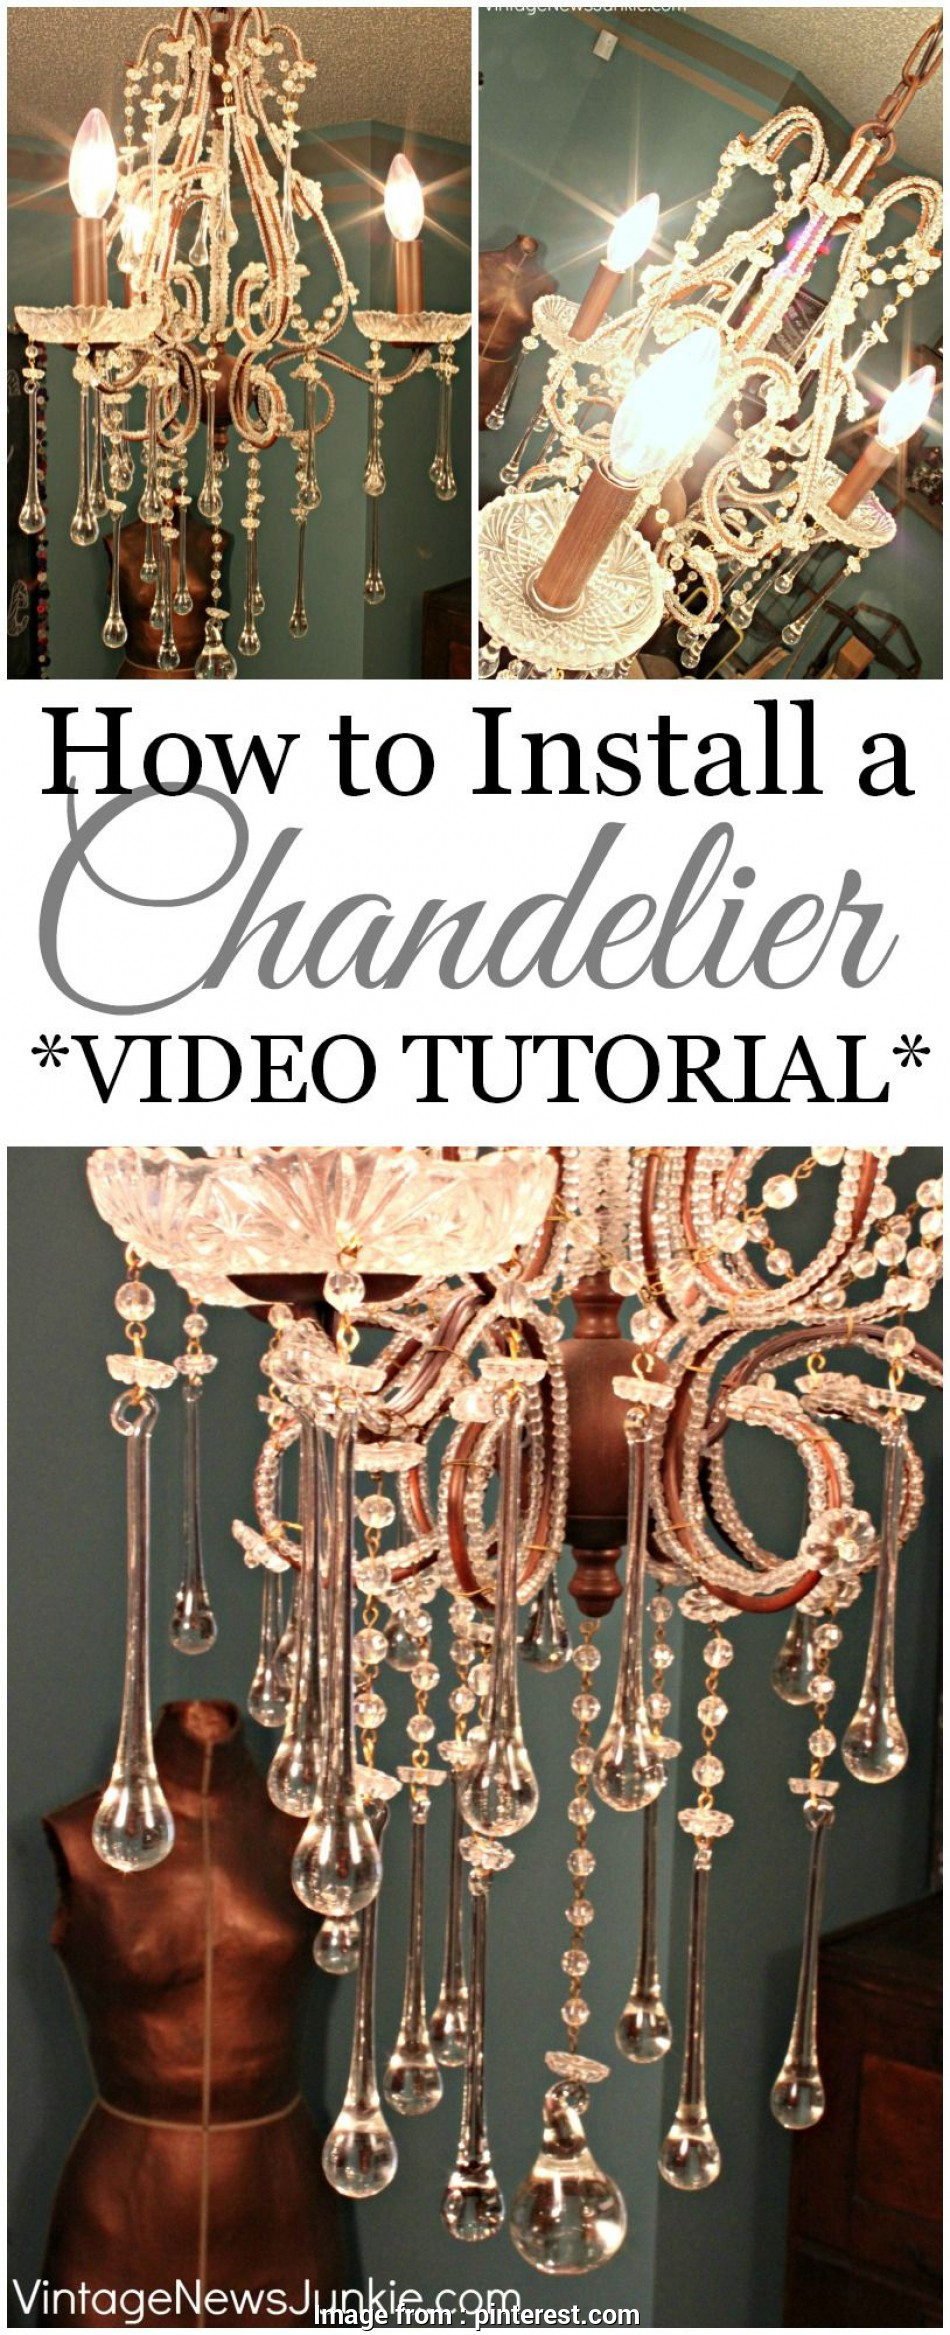 how to install a light fixture video My $8 Thrift Store Chandelier! *VIDEO TUTORIAL*, Pinterest 10 Popular How To Install A Light Fixture Video Solutions